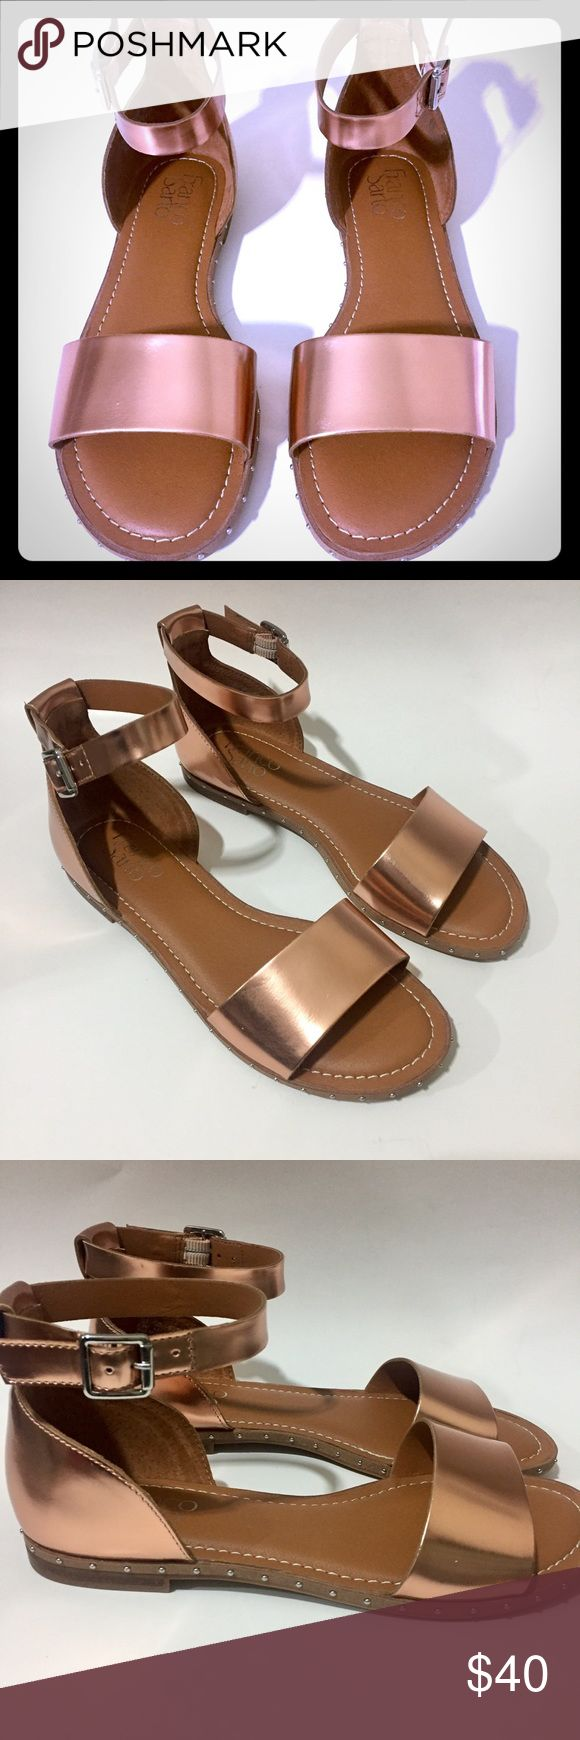 """Franco Sarto Rose Gold Venice Sandal Franco Sarto Rose Gold Venice Sandal are causal yet chic in a pretty ankle strap design with studding details for added shine. 1/4"""" heel Adjustable buckle closure at ankle strap Leather upper, leather sole Franco Sarto Shoes Sandals"""